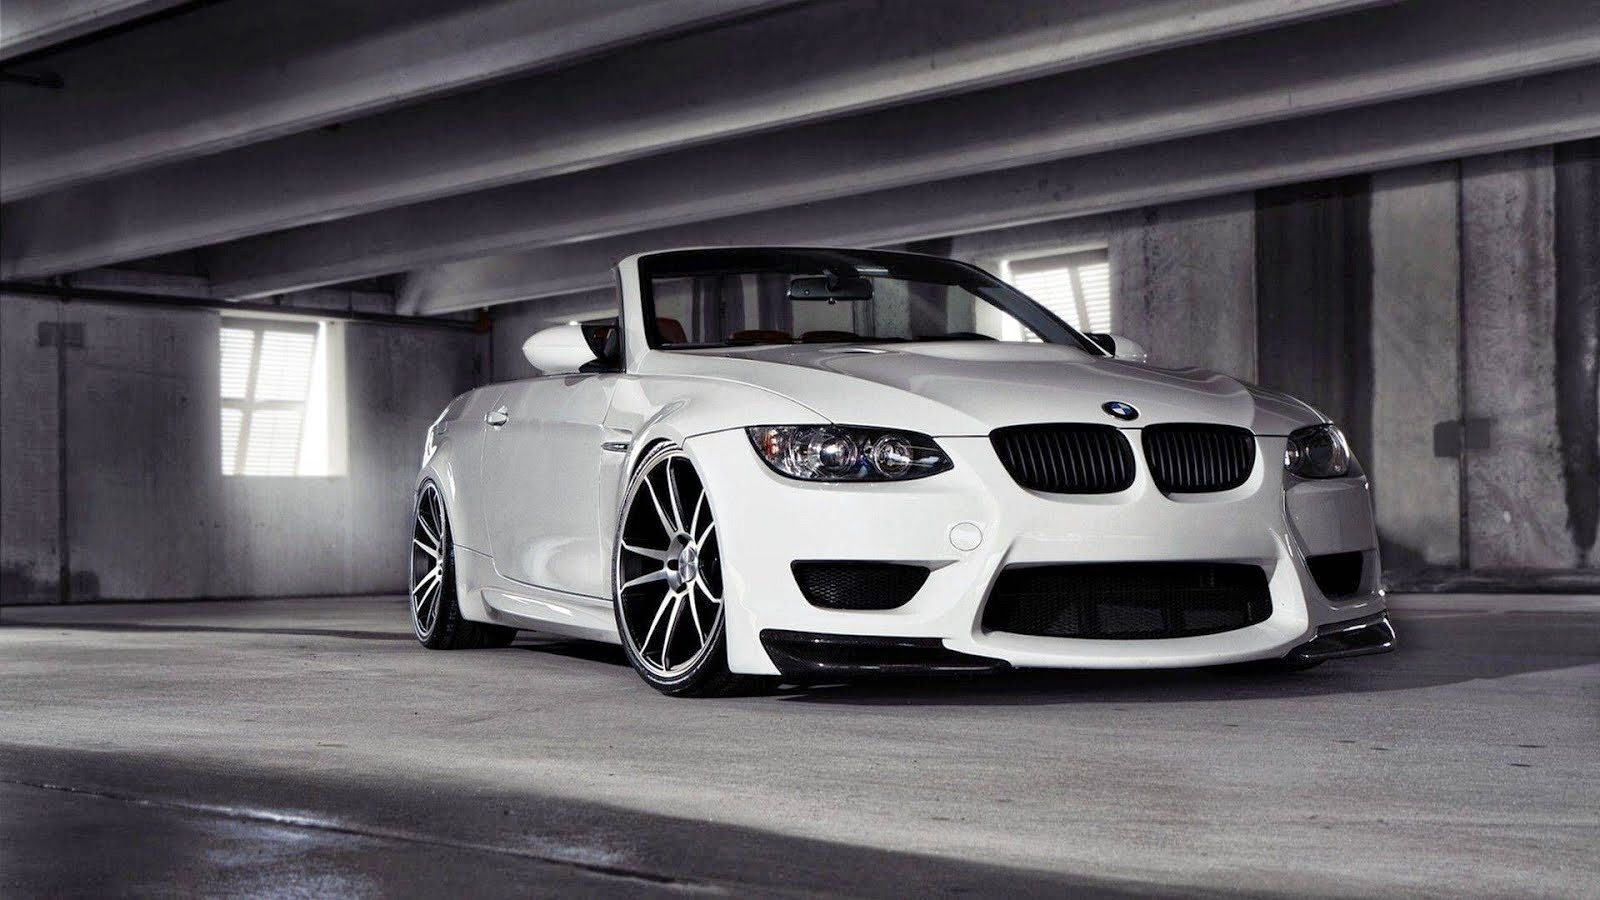 bmw m3 coupe wallpaper hd wallpaperautocars. Black Bedroom Furniture Sets. Home Design Ideas